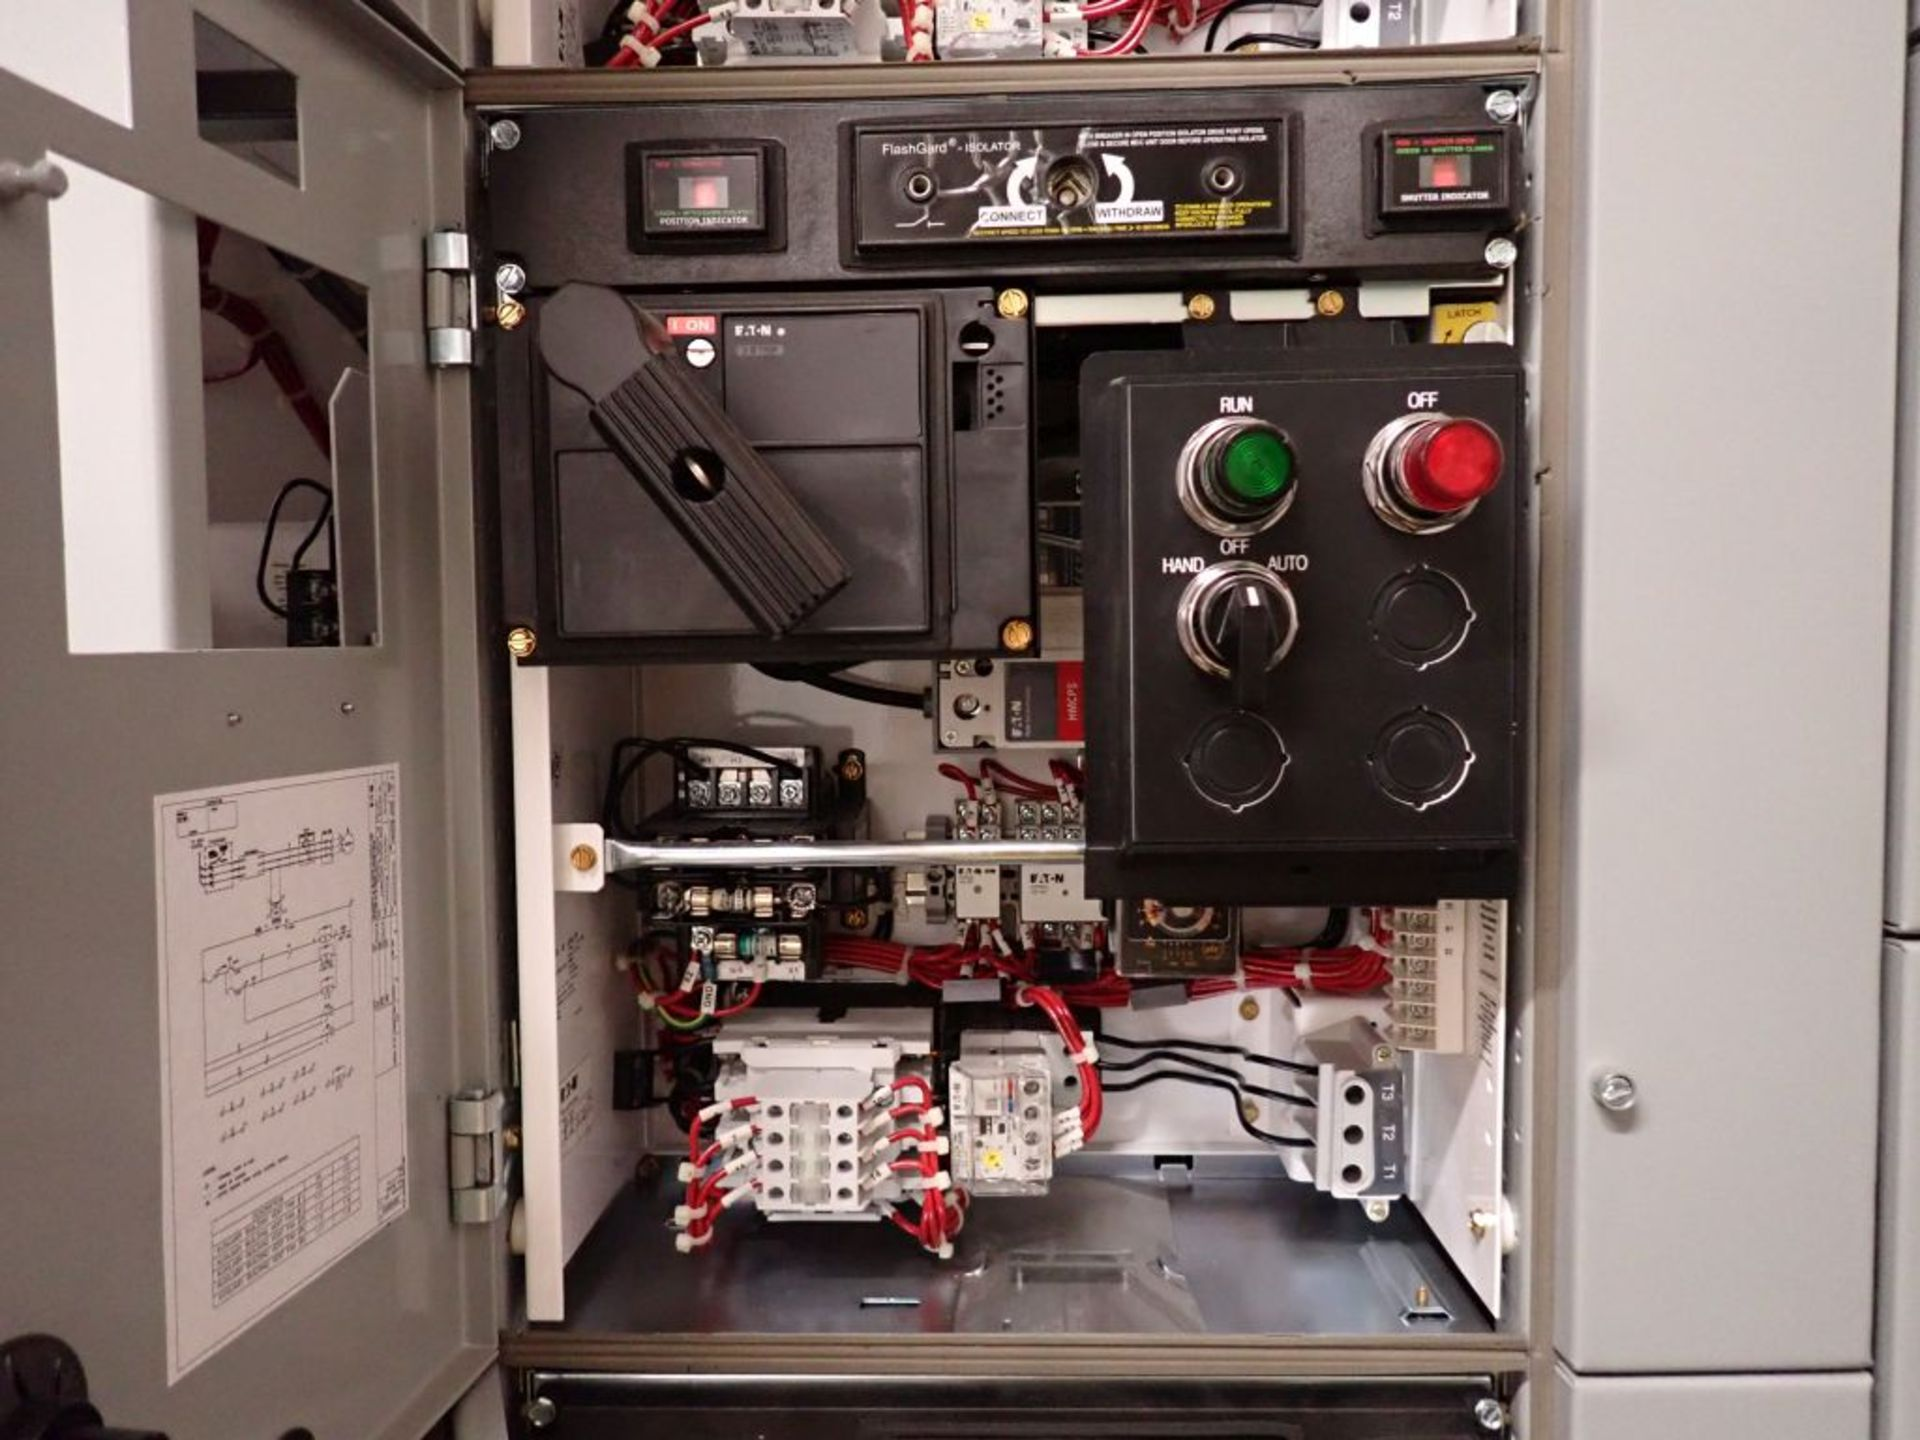 Eaton Freedom 2100 Series Motor Control Center | (11) F206-30A-10HP; (5) F206-15A-10HP; (1) SVX900- - Image 62 of 102